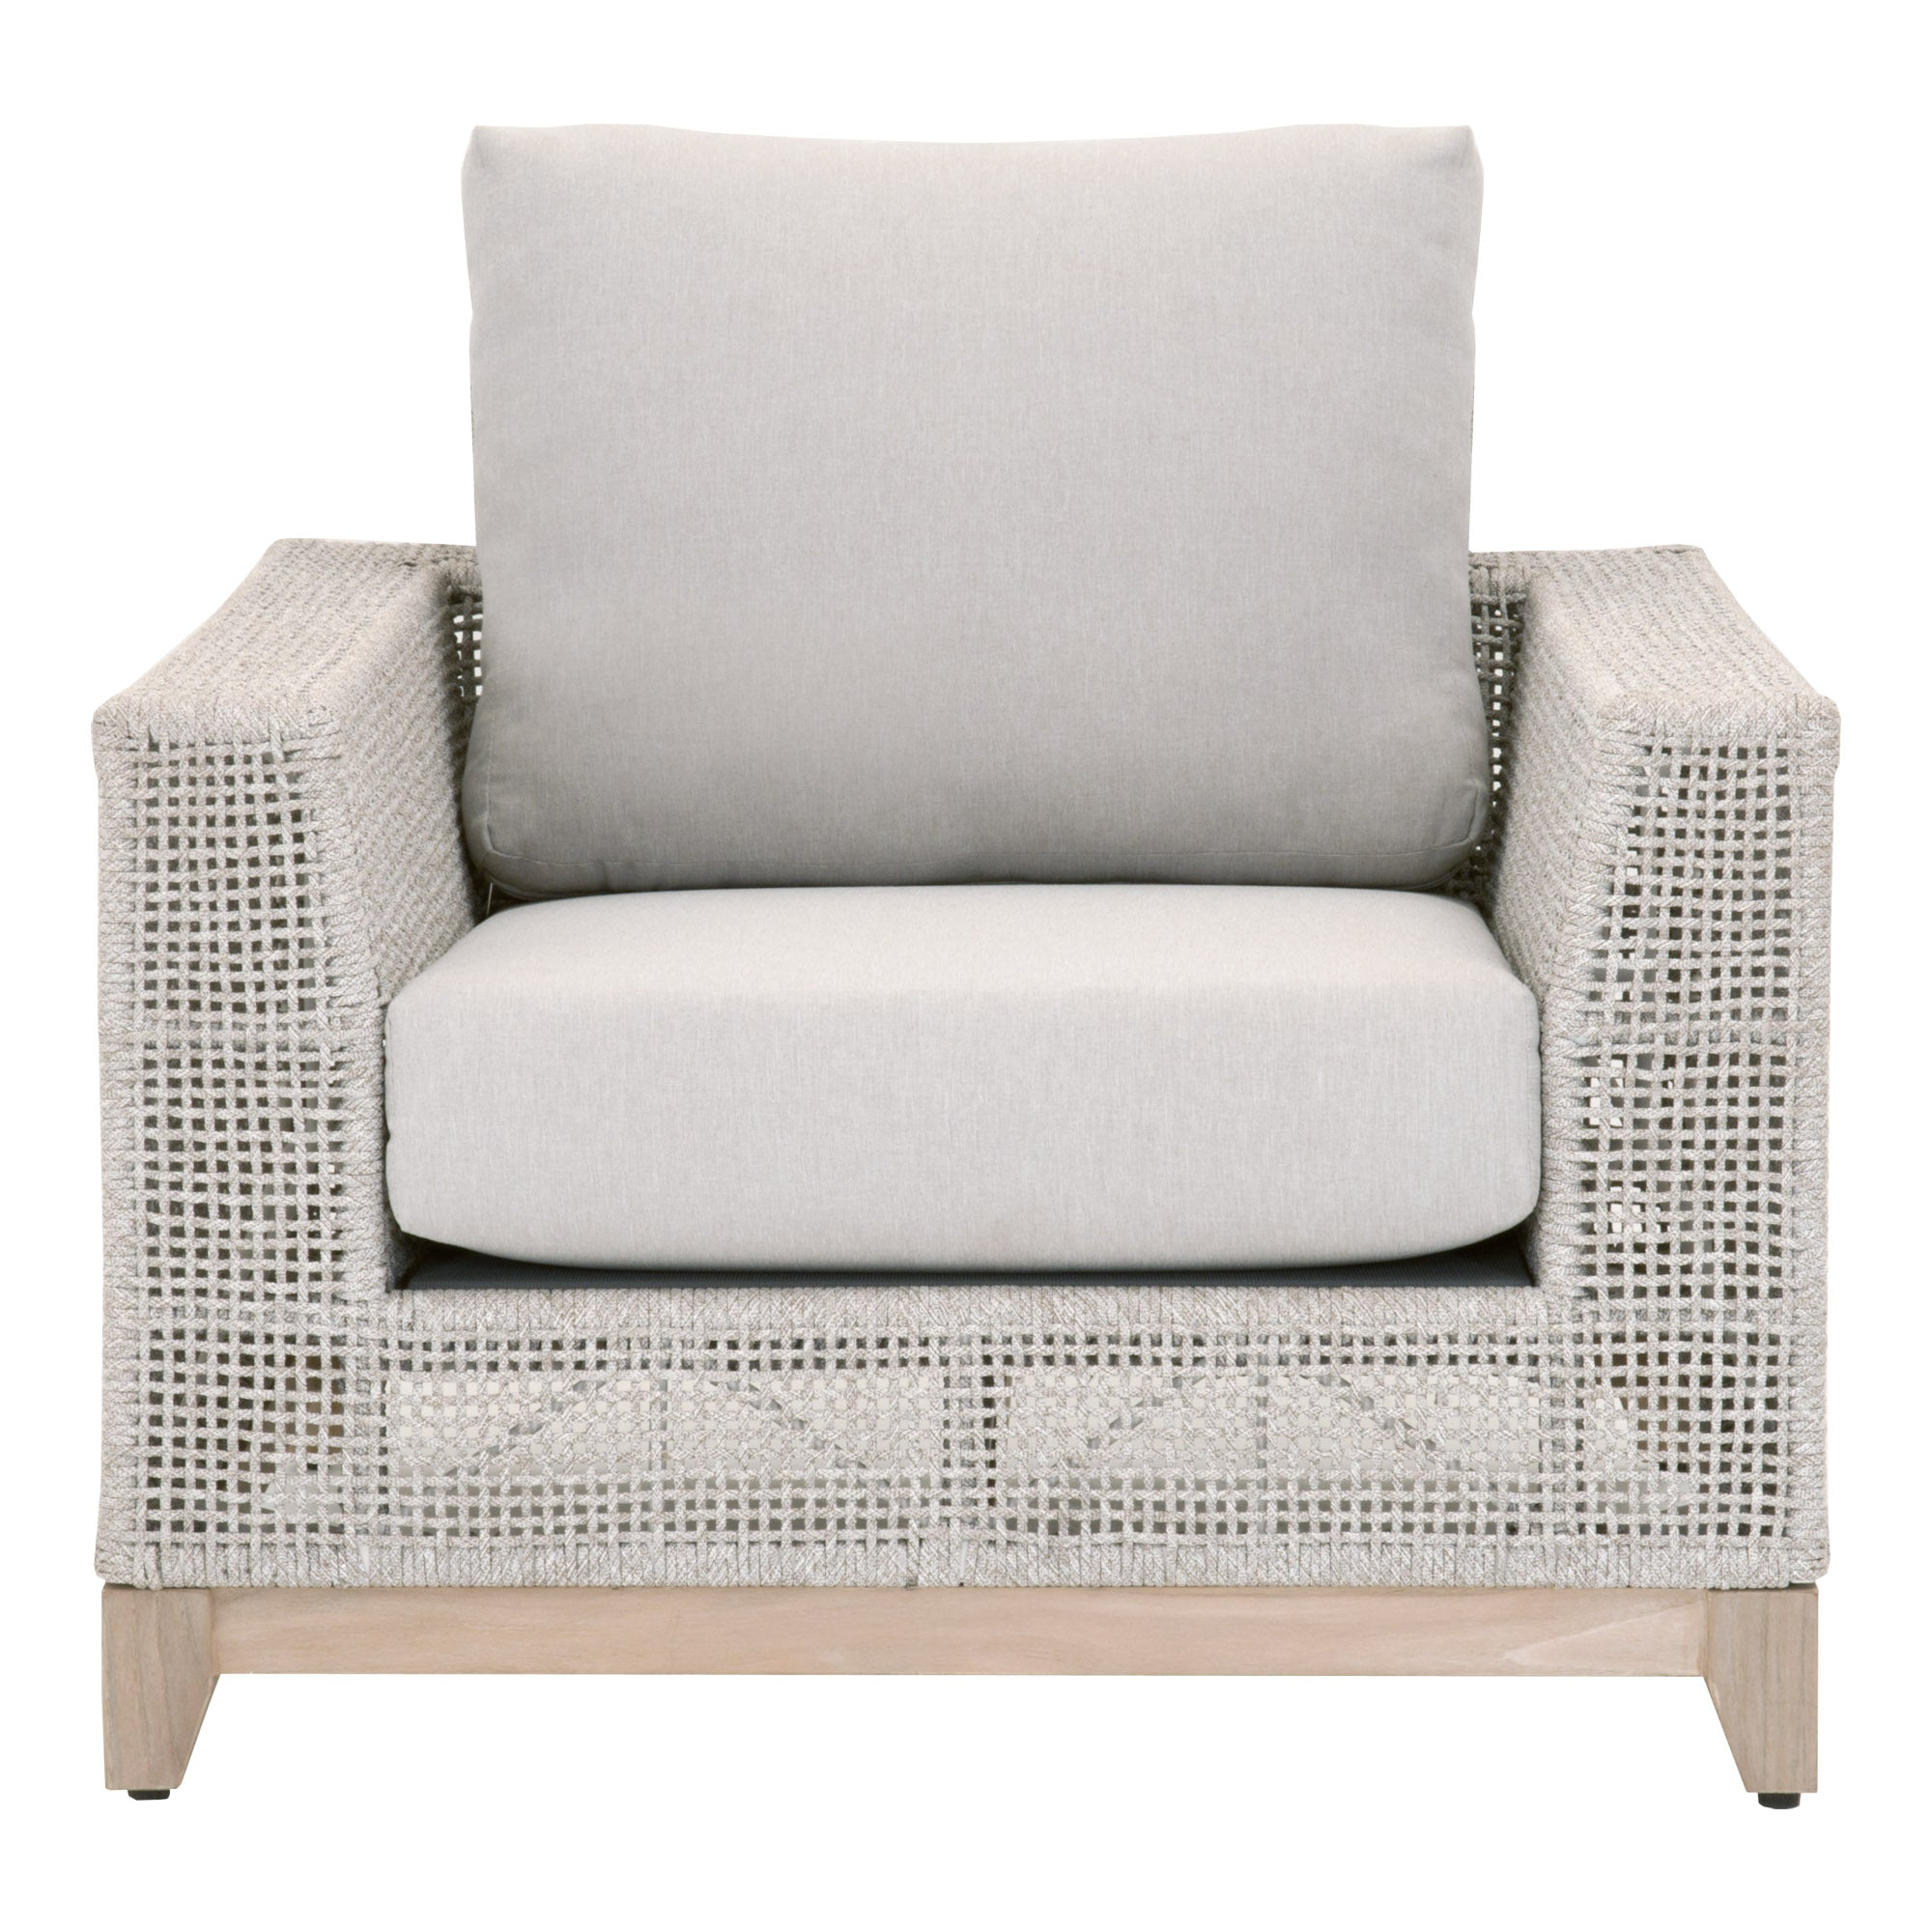 Essentials for Living-Tropez Outdoor Sofa Chair-Outdoor Lounge Chairs-MODTEMPO